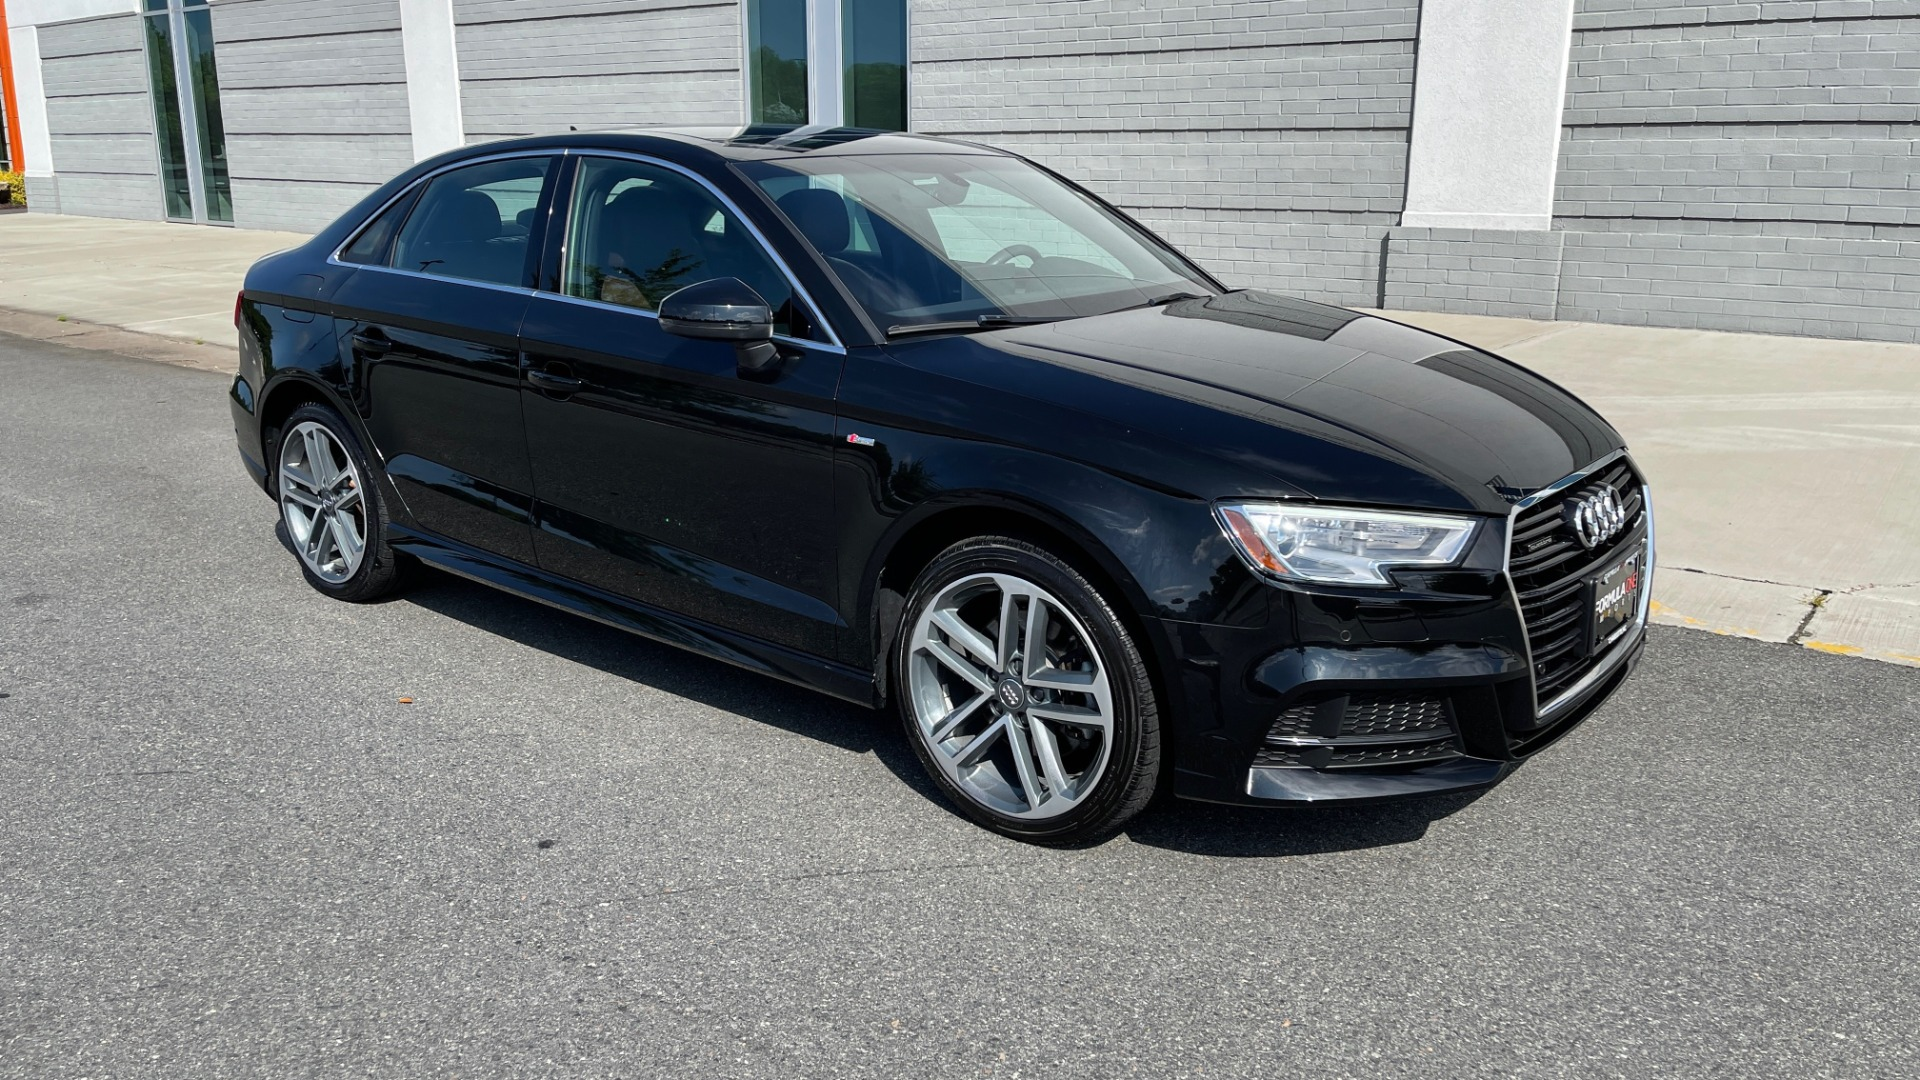 Used 2018 Audi A3 SEDAN PREMIUM PLUS / S-LINE / PANO-ROOF / PARK SYS / REARVIEW for sale $31,795 at Formula Imports in Charlotte NC 28227 6